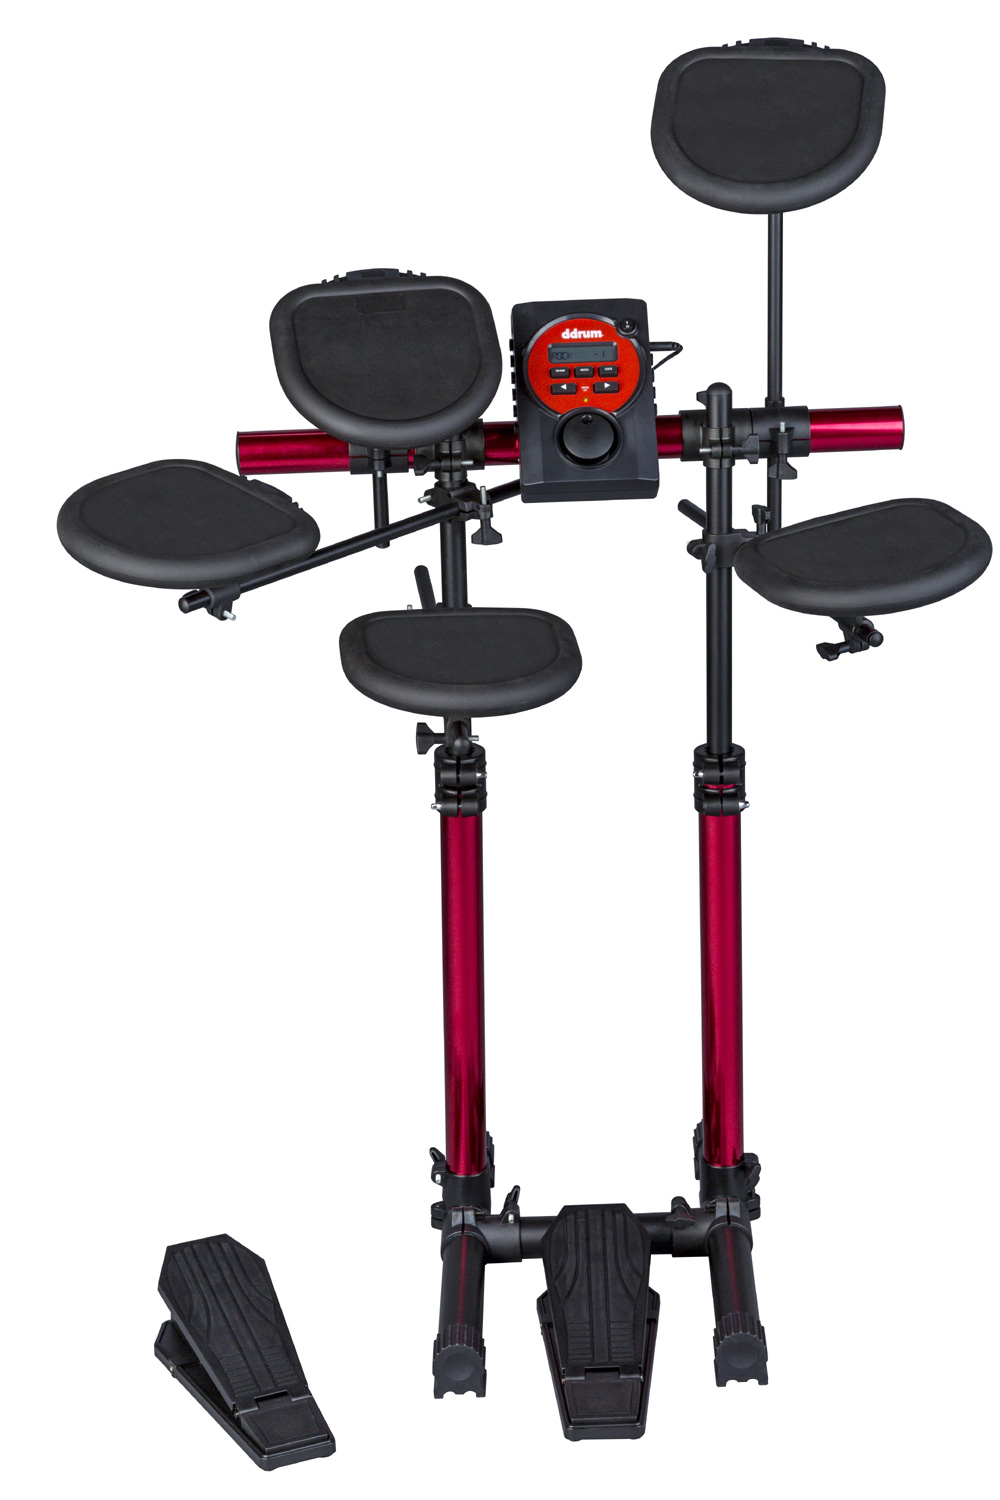 Ddrum DD Series Beta Black Finish Compact Electronic Drum Kit (DD BETA D LITE) by